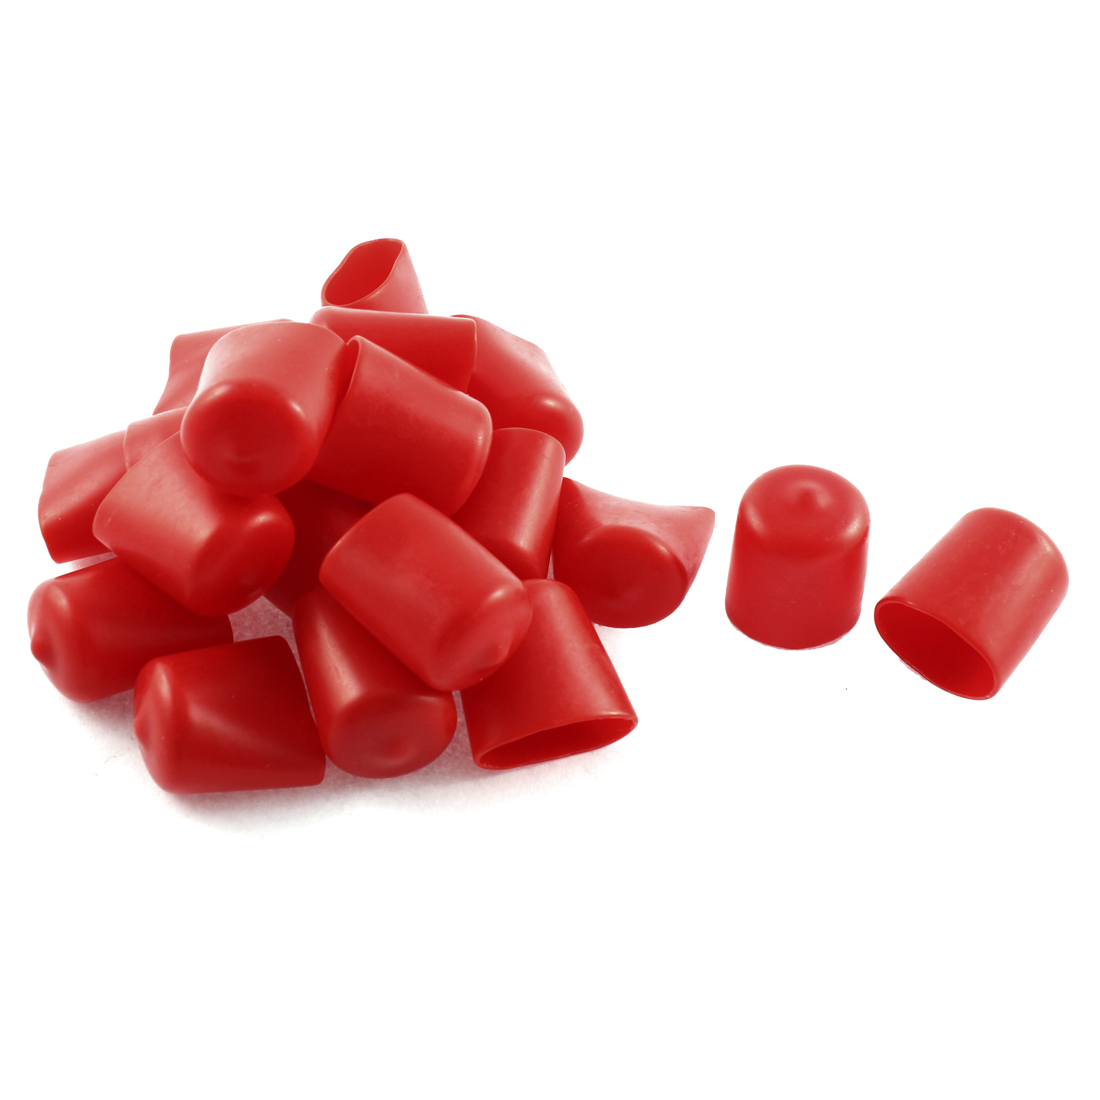 20Pcs Red Soft Plastic PVC Insulated End Sleeves Caps Cover 20mm Dia